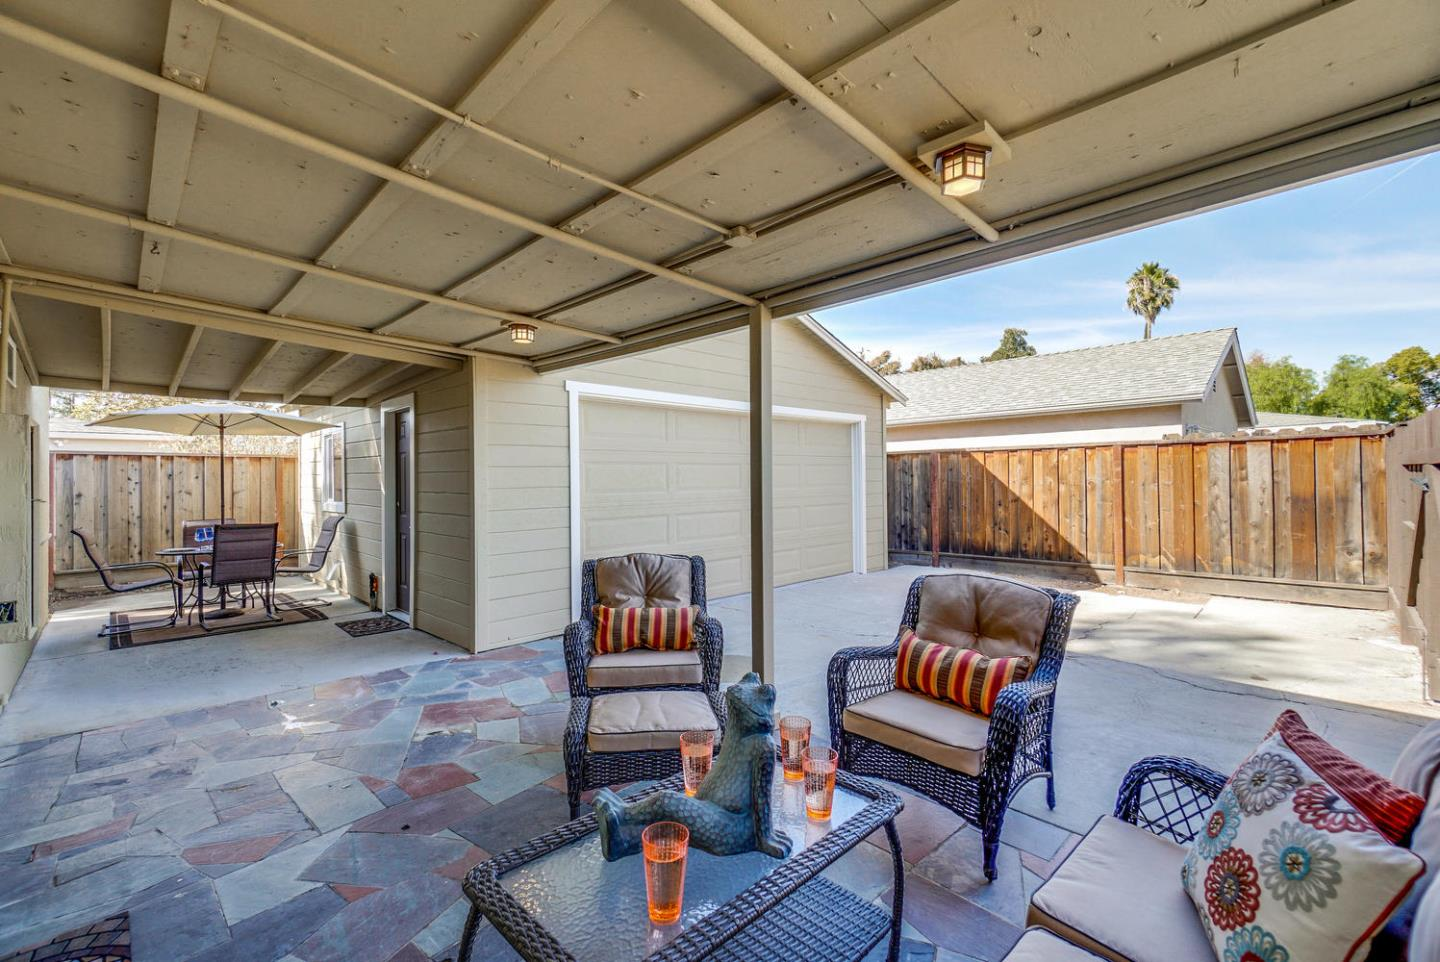 3099 Kirk Road San Jose, CA 95124 - MLS #: ML81729913